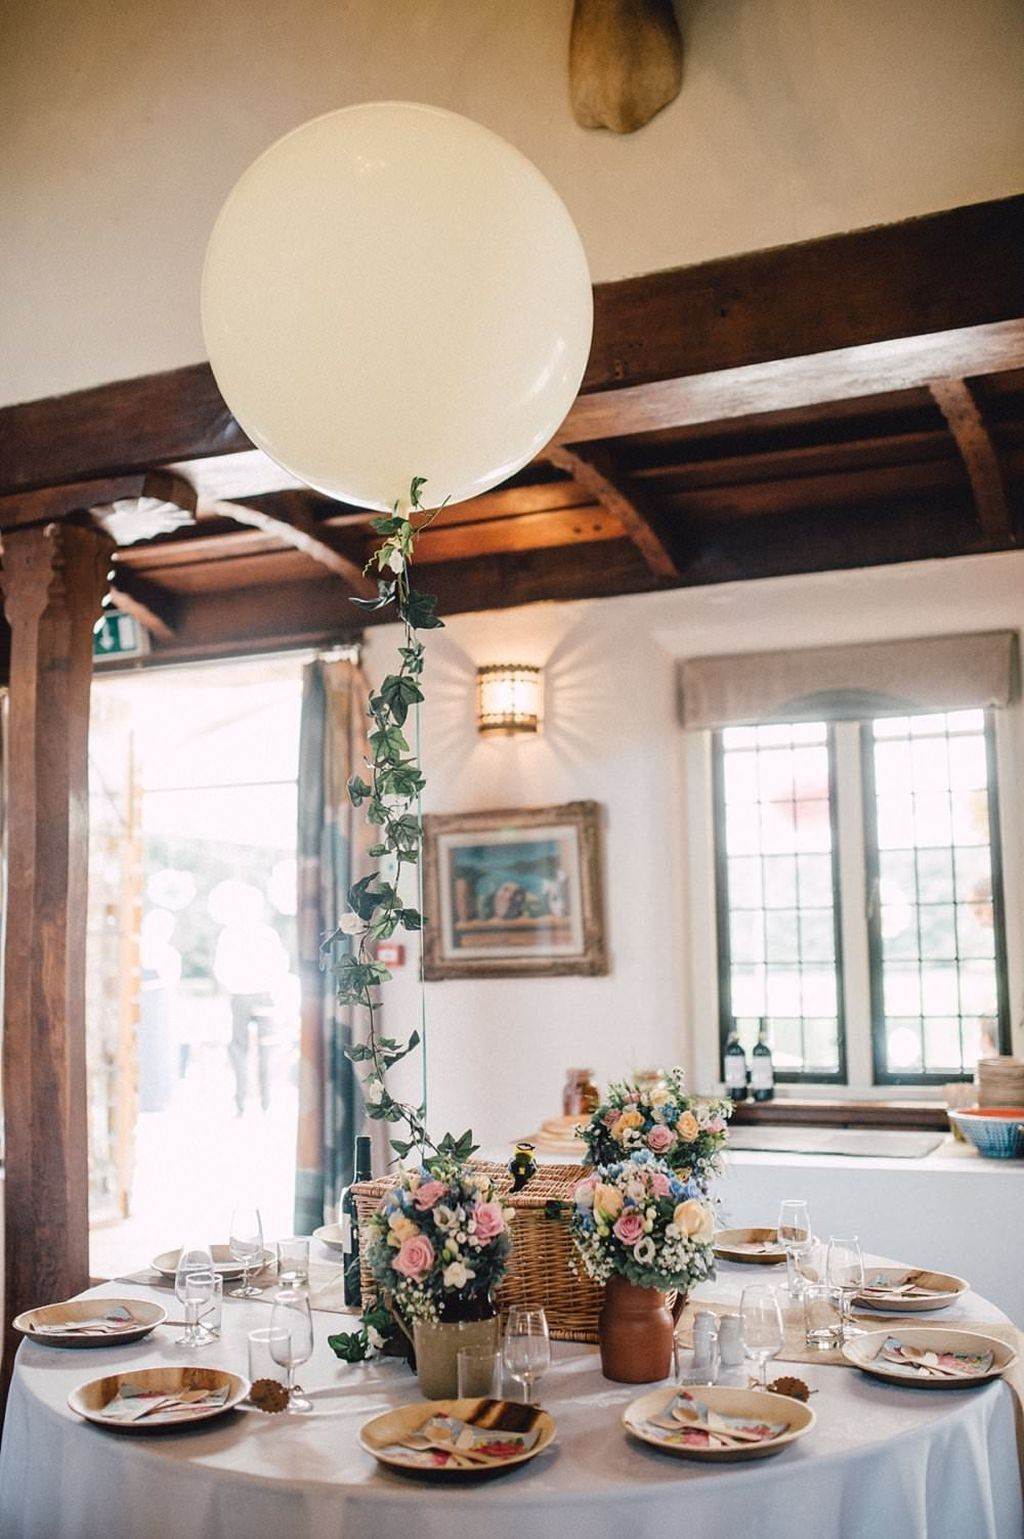 Wedding decoration ideas with balloons   Simple and Beautiful Balloon Wedding Centerpieces Decoration